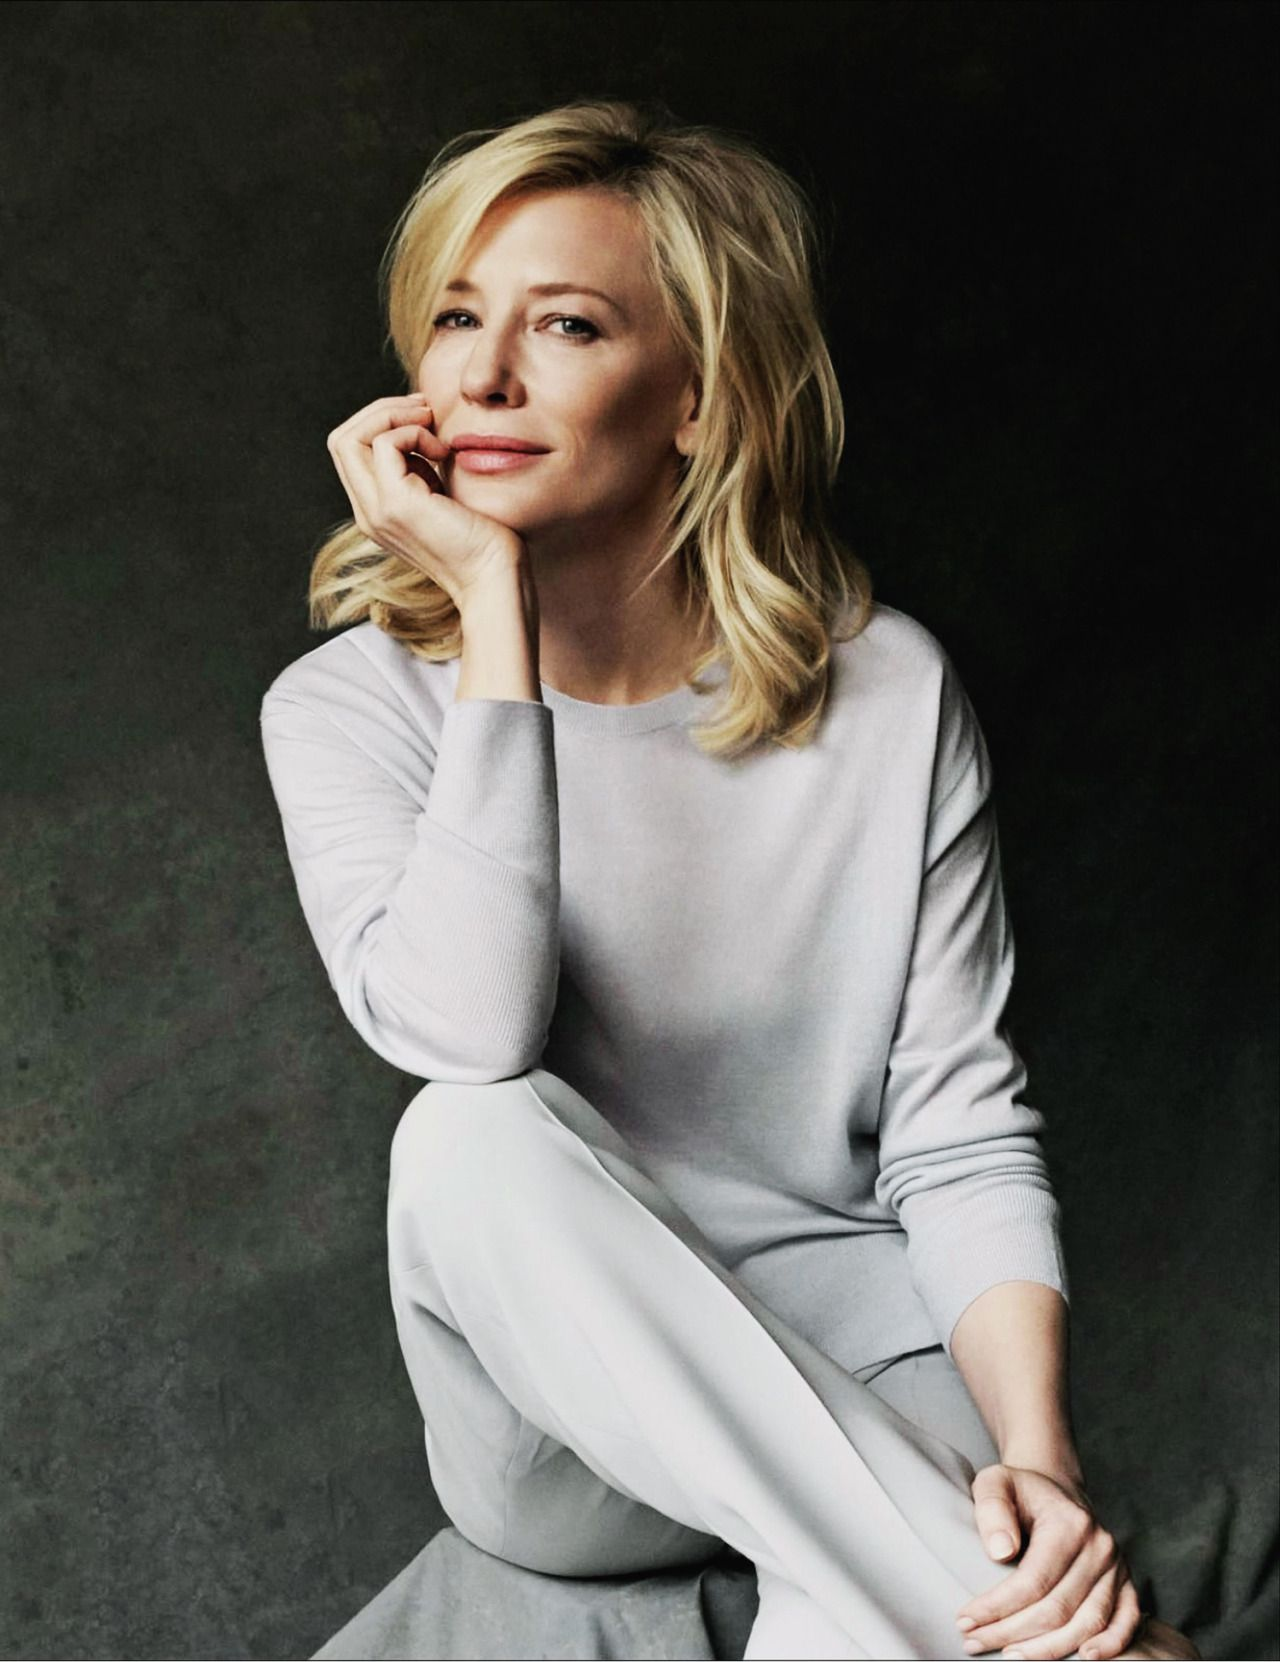 cate blanchett - photo #8